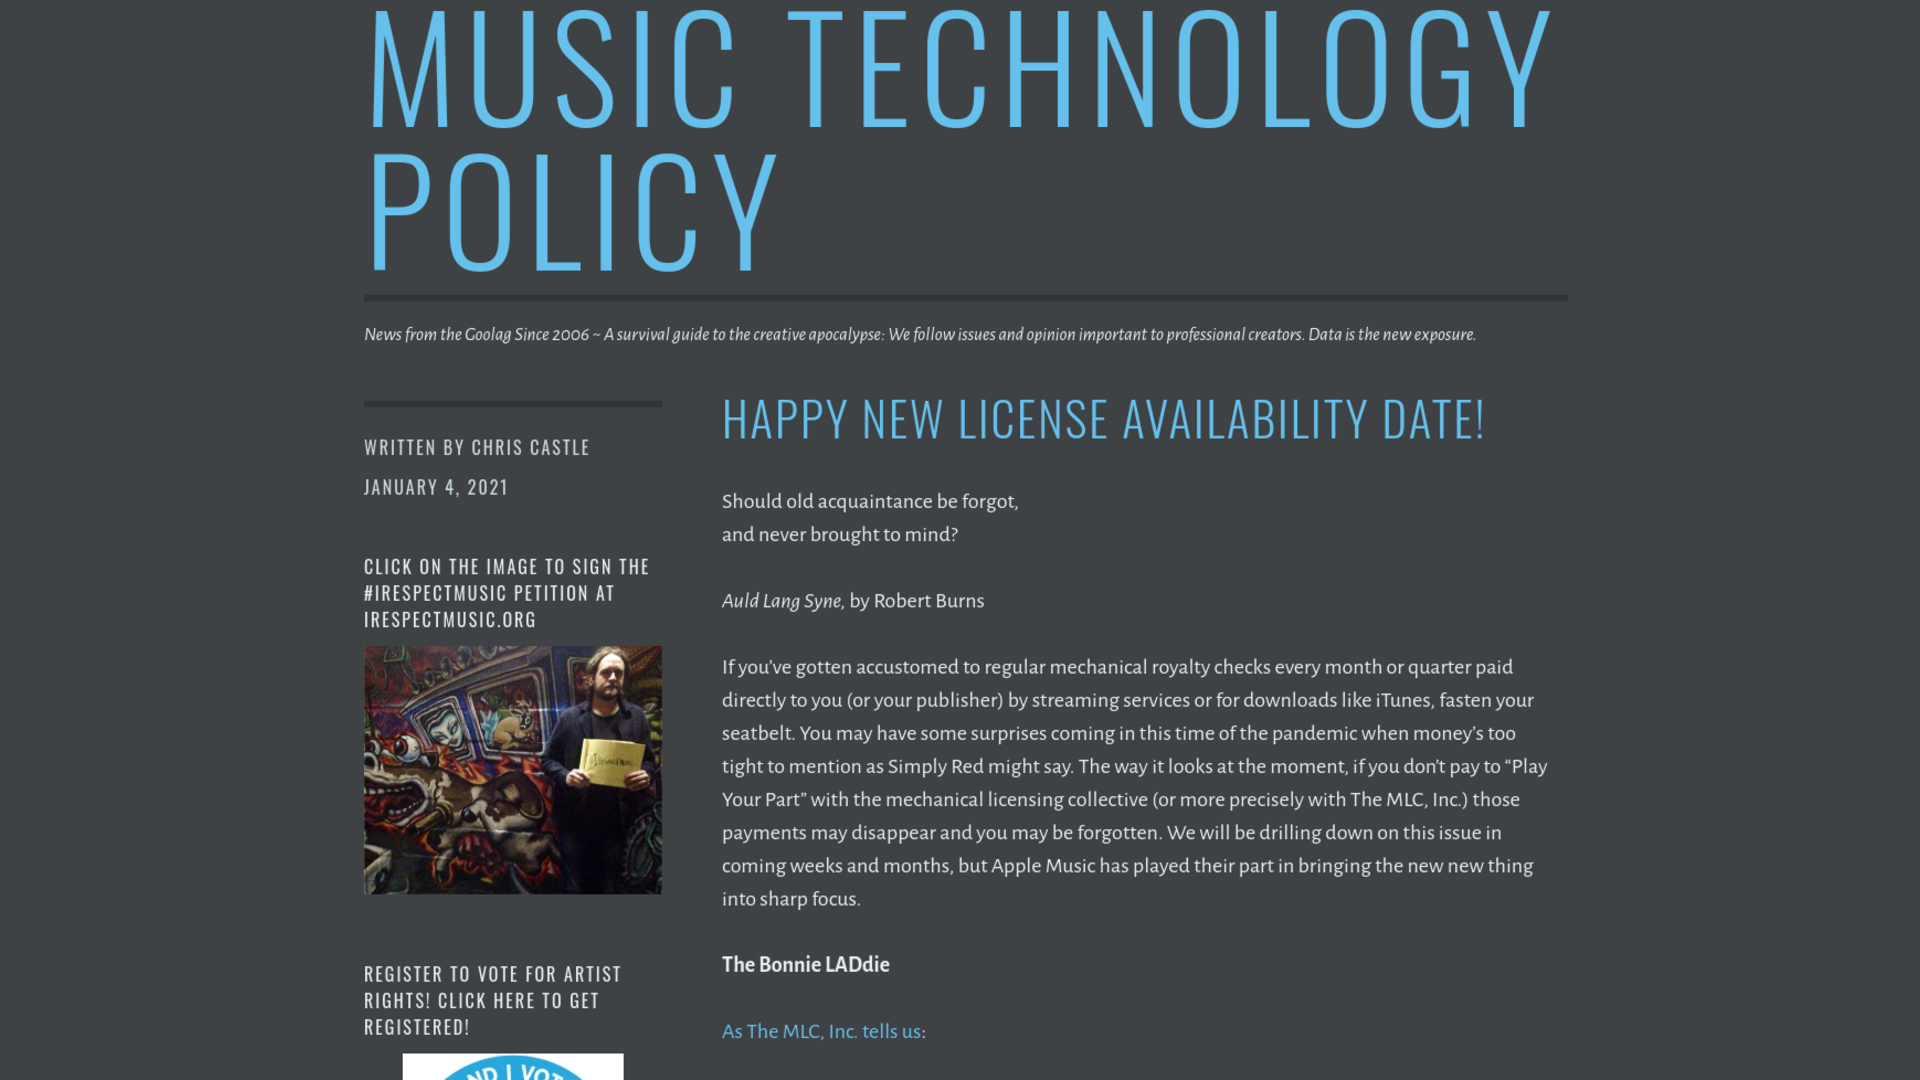 Fairness Rocks News Happy New License Availability Date!